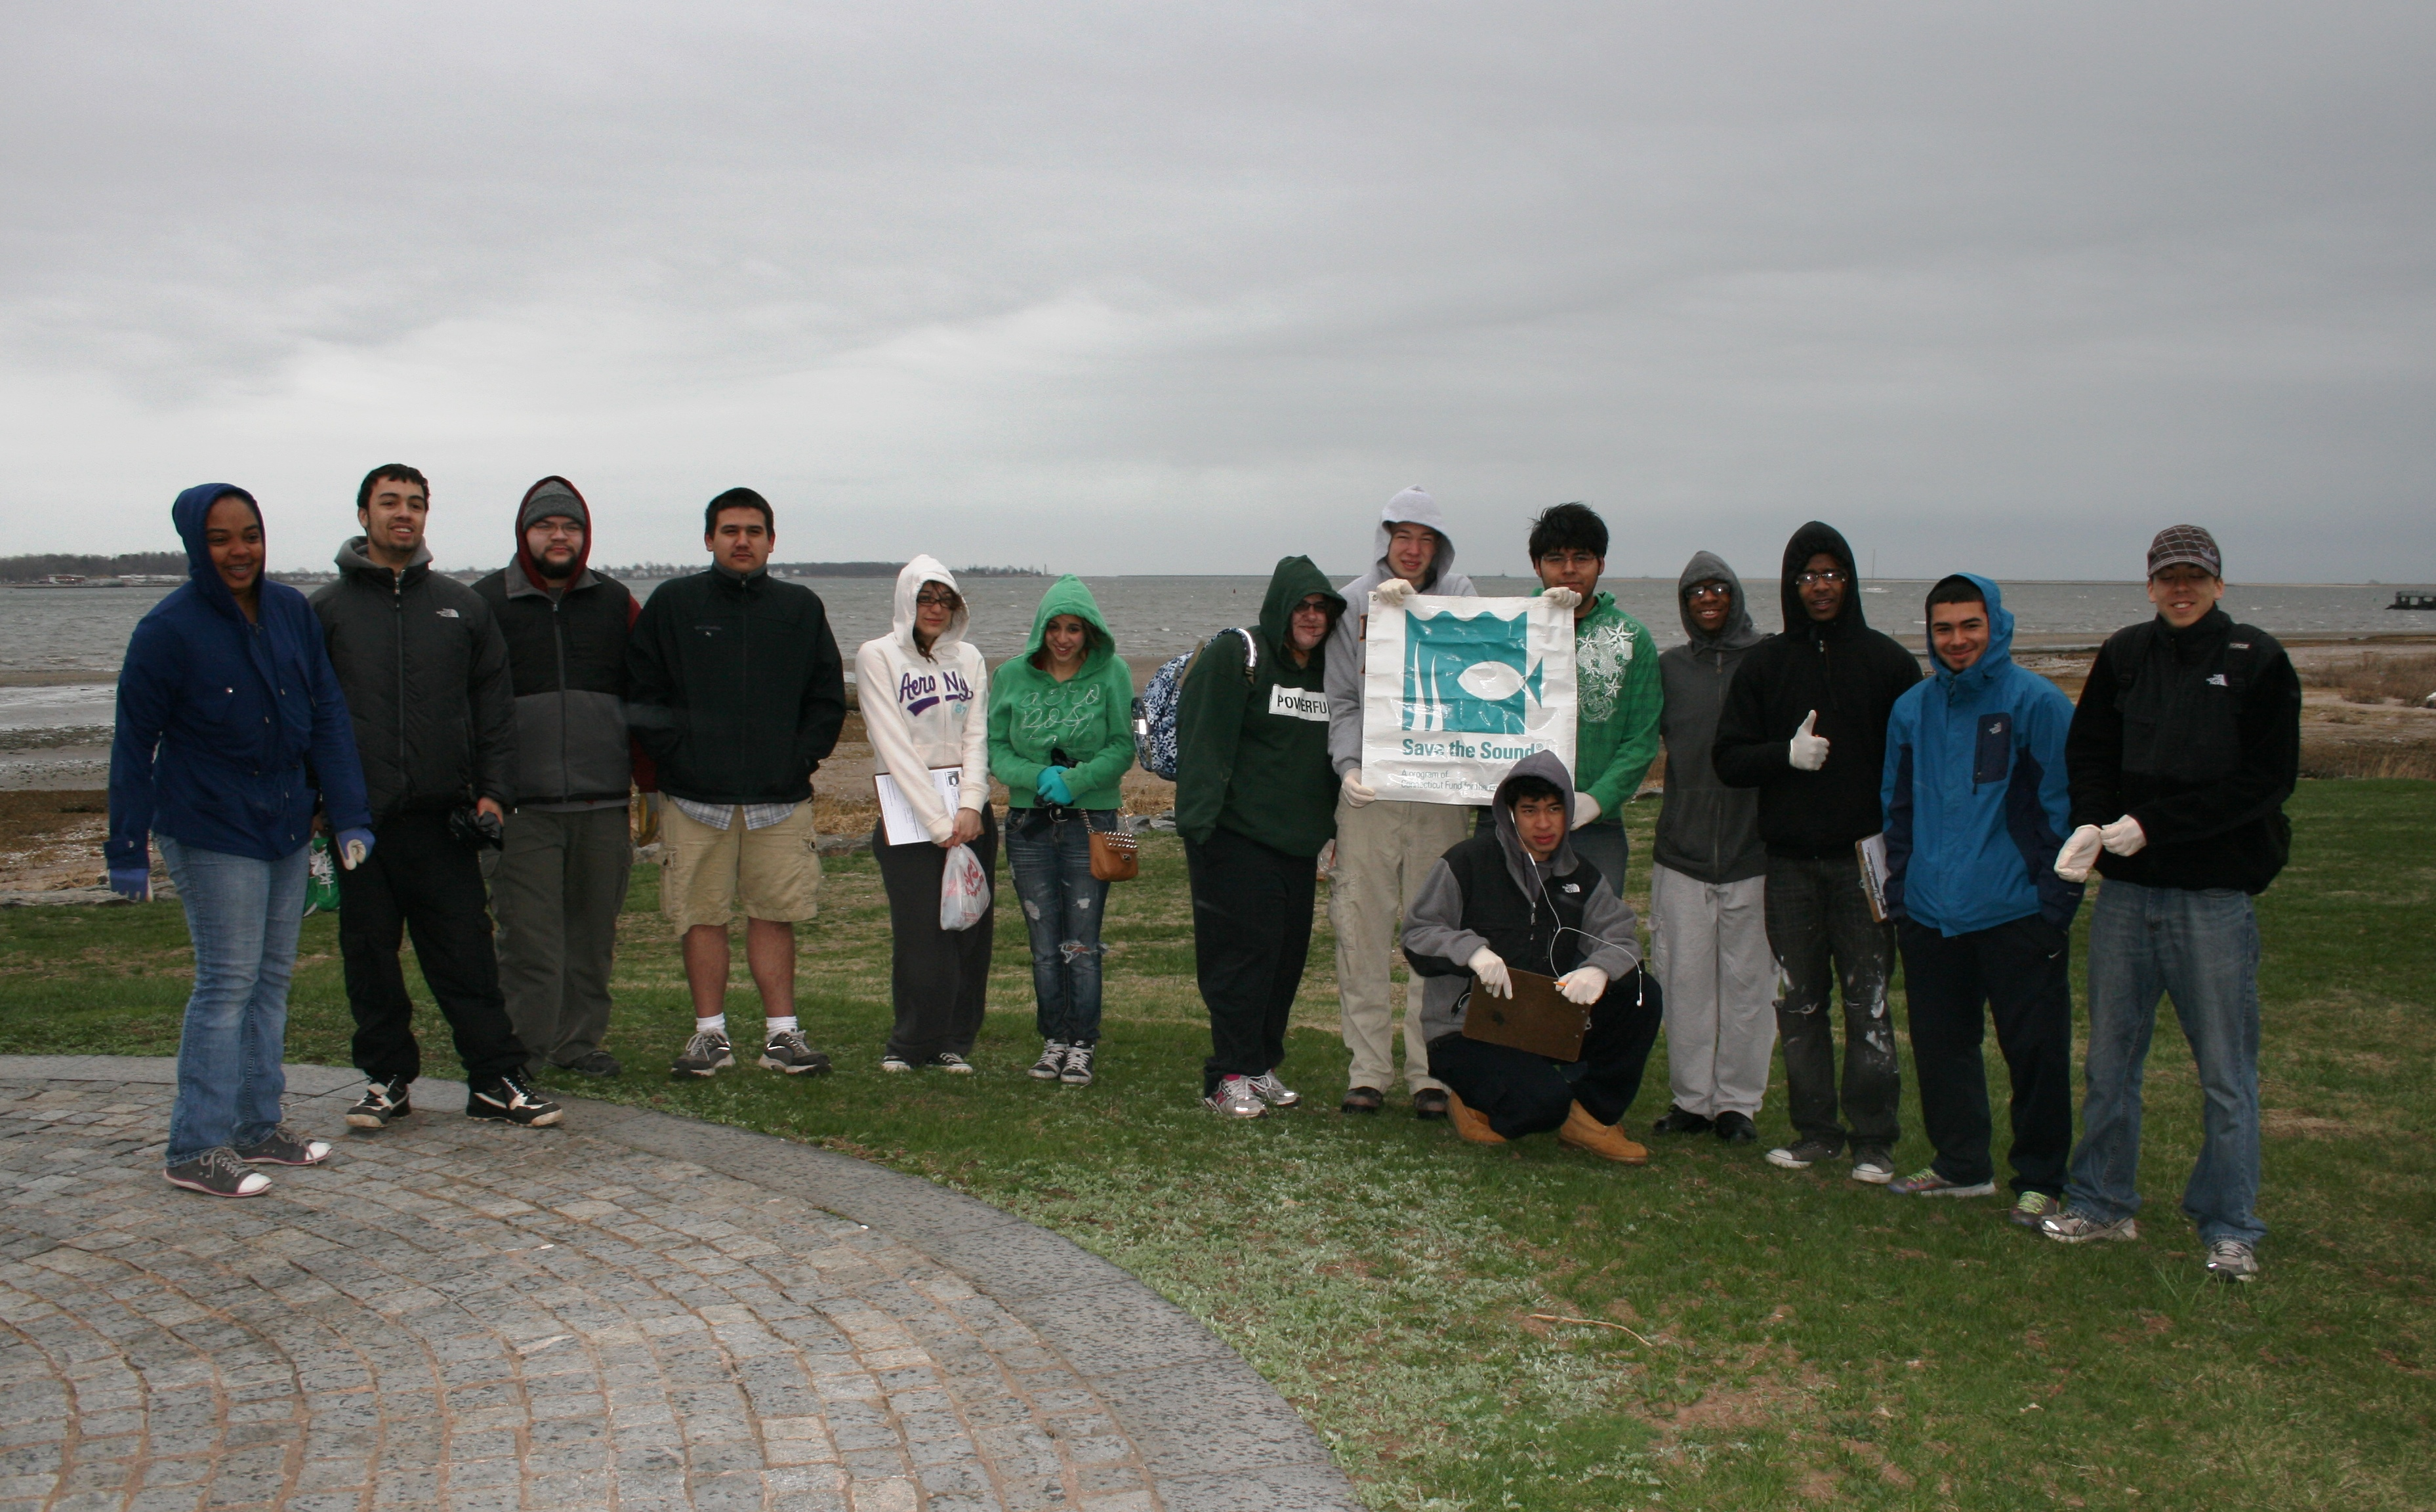 Beach cleanup with Common Ground.